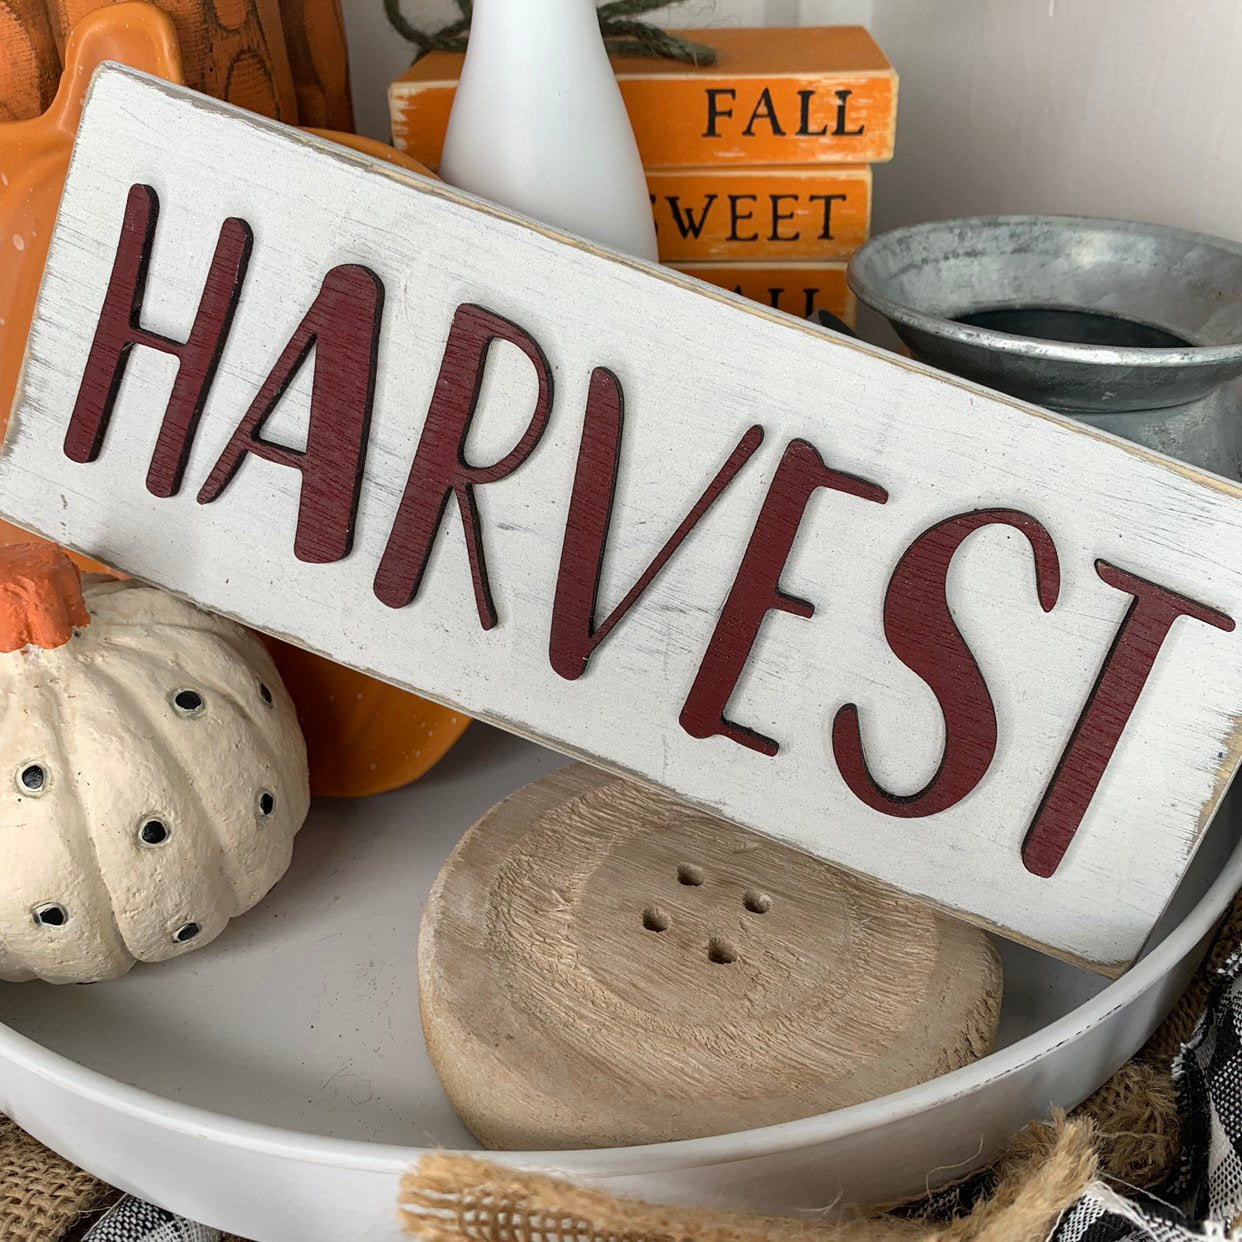 Harvest Block White 3D Wood Sign | Fall sign | Small wood sign | Decor | Fall Decor | October November Sign | Rae Dunn Font | Tiered Tray